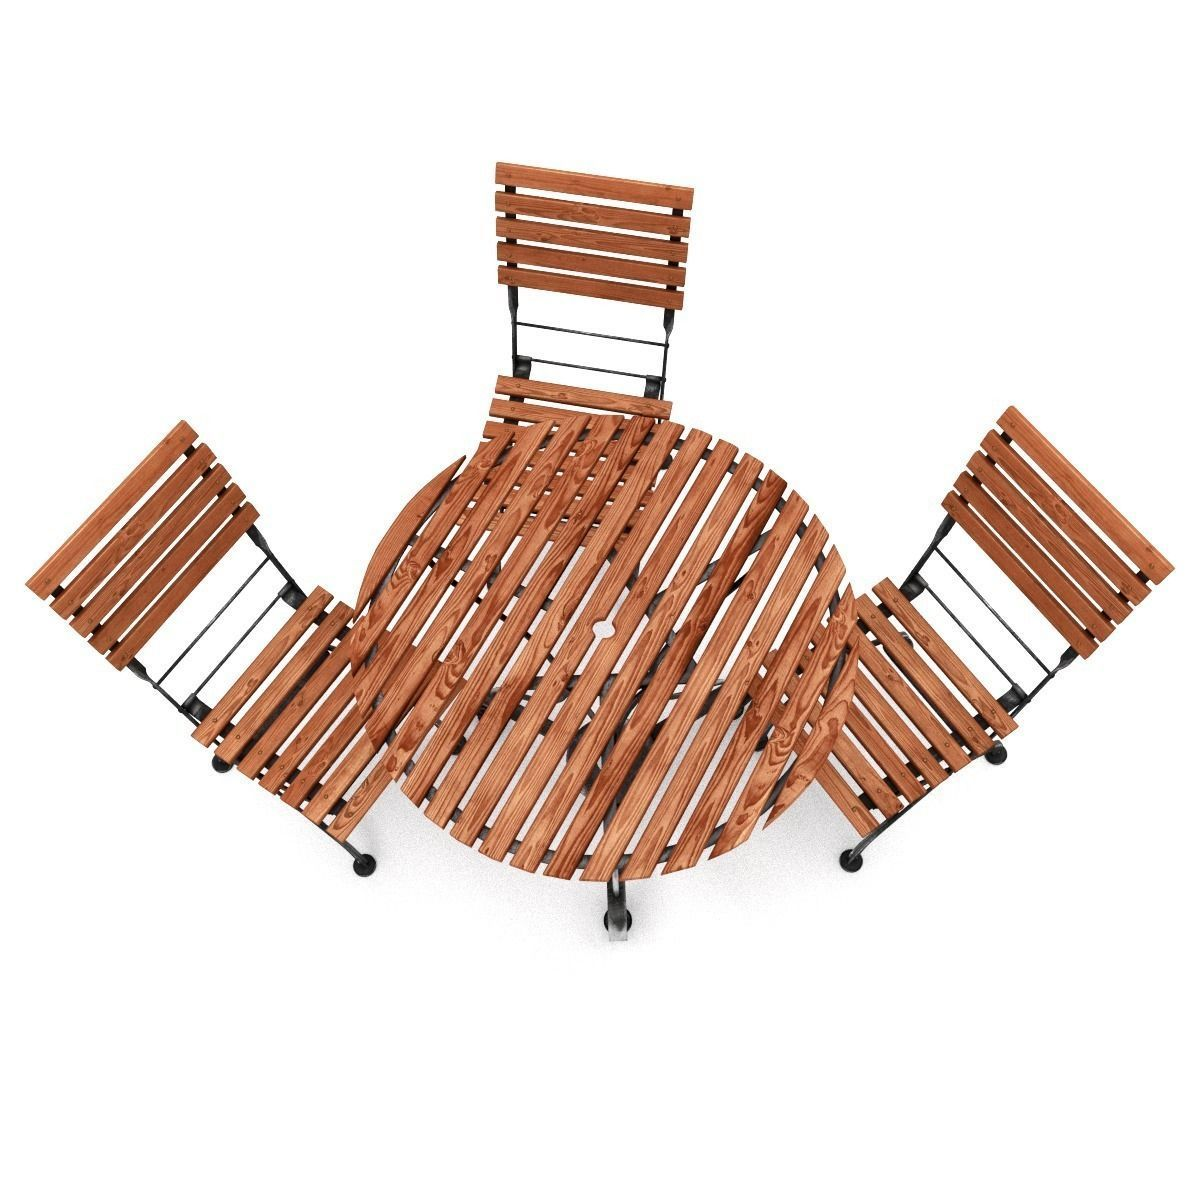 Garden Furniture Top View garden furniture set garden 3d model | cgtrader